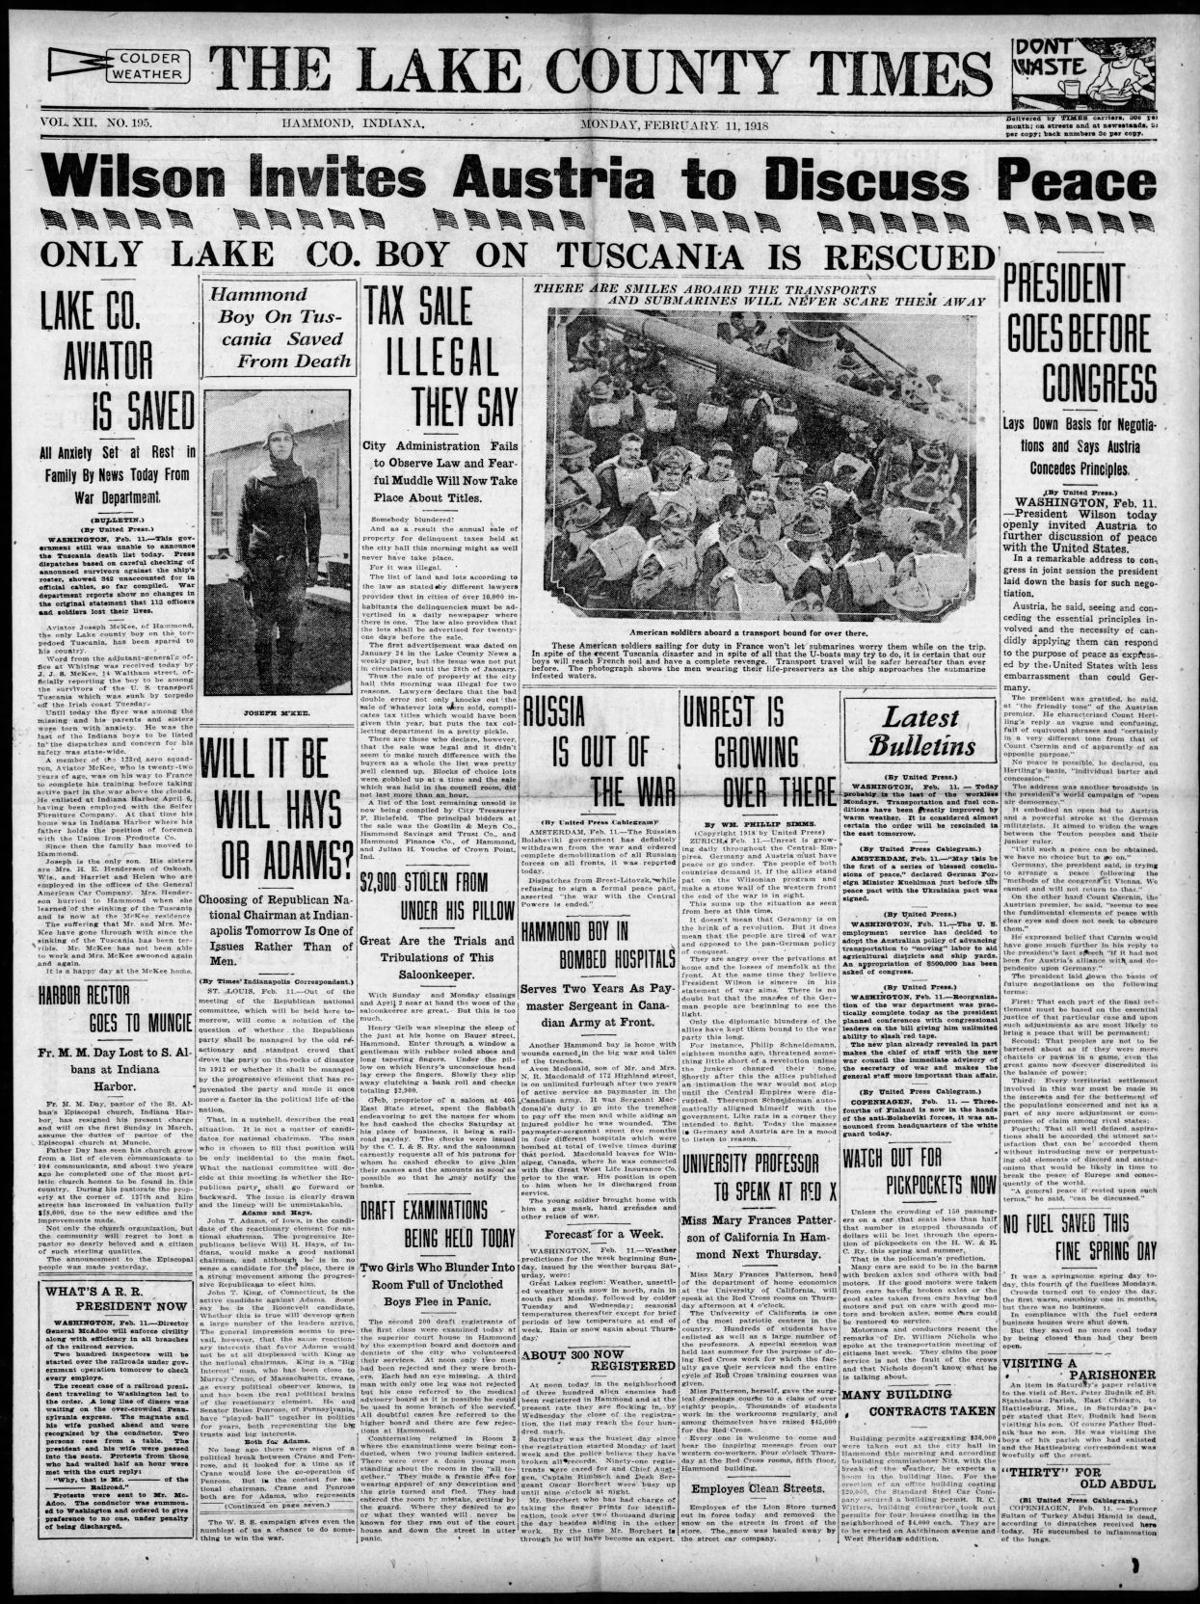 Feb. 11, 1918: Only Lake Co. Boy On Tuscania Is Rescued